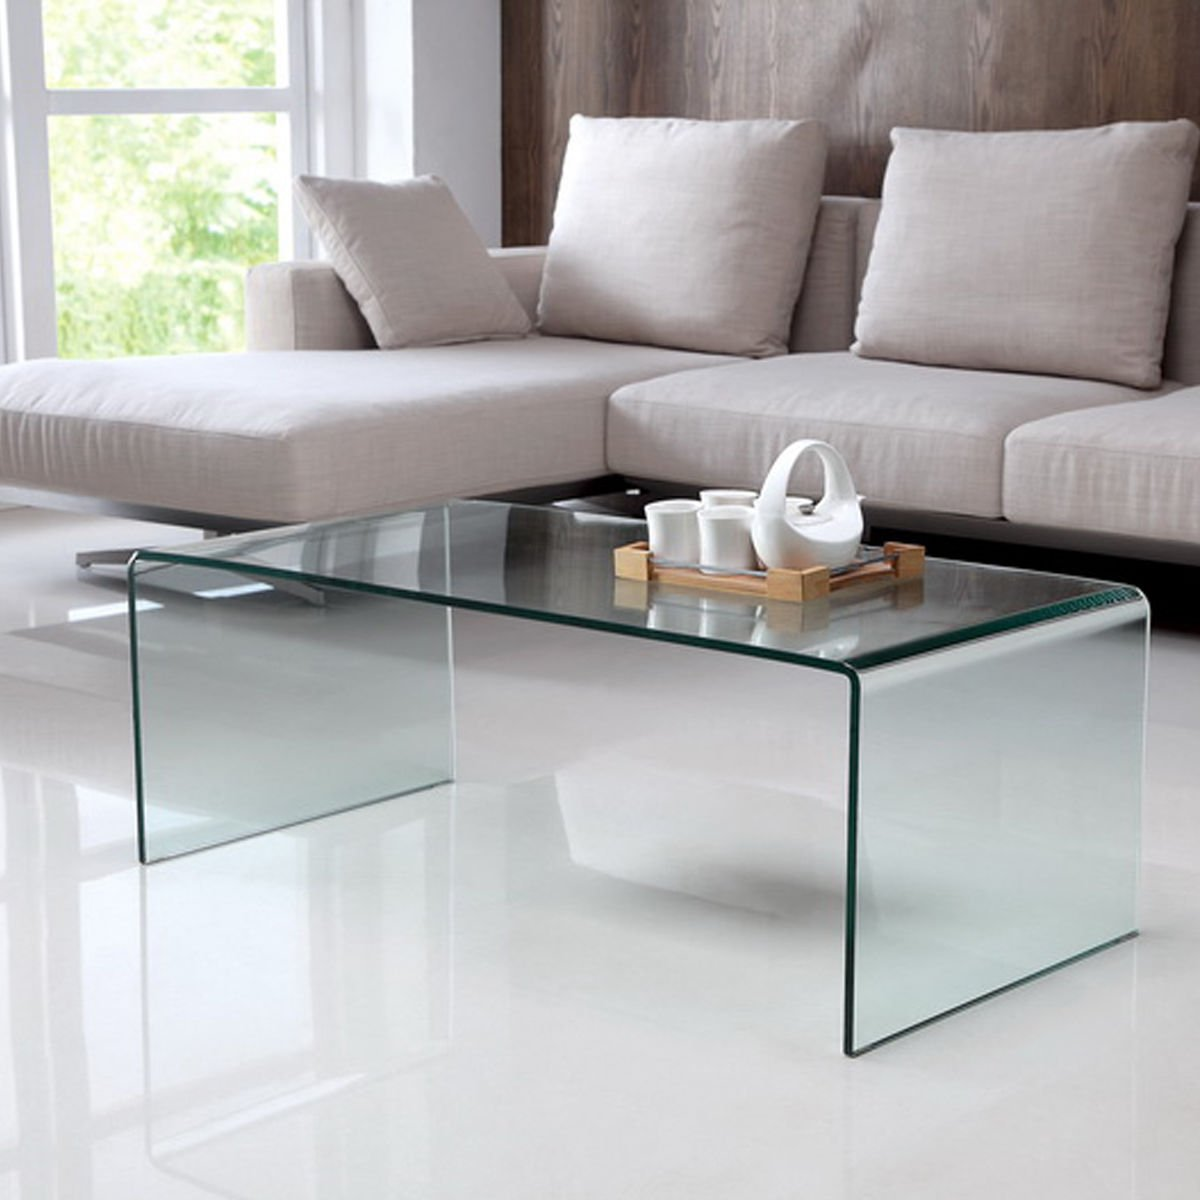 Amazon.com: Tangkula Coffee Table Tempered Glass Rectangle Cocktail Table Living  Room Furniture: Kitchen U0026 Dining